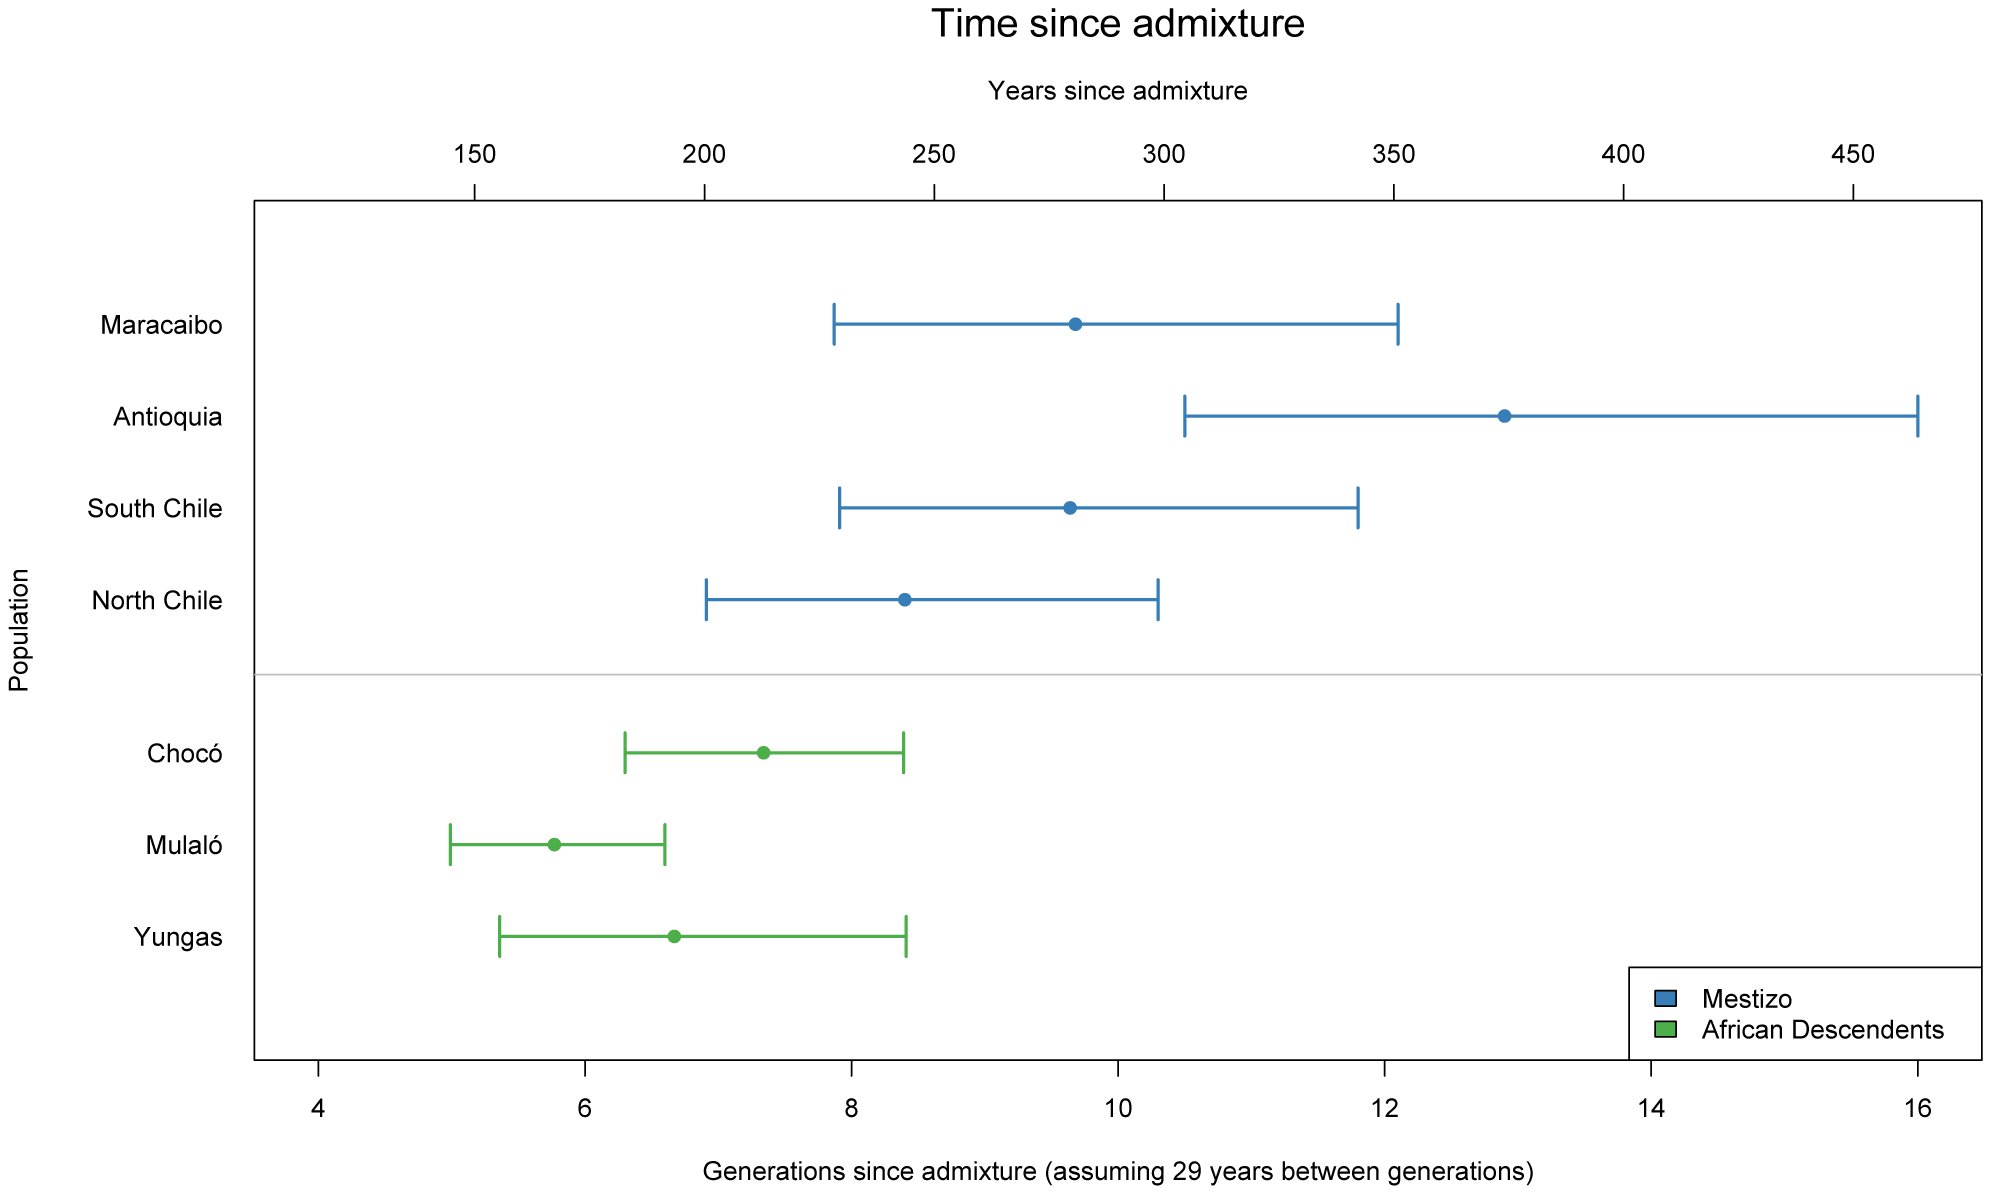 Time since admixture for Mestizo and African descendent populations.